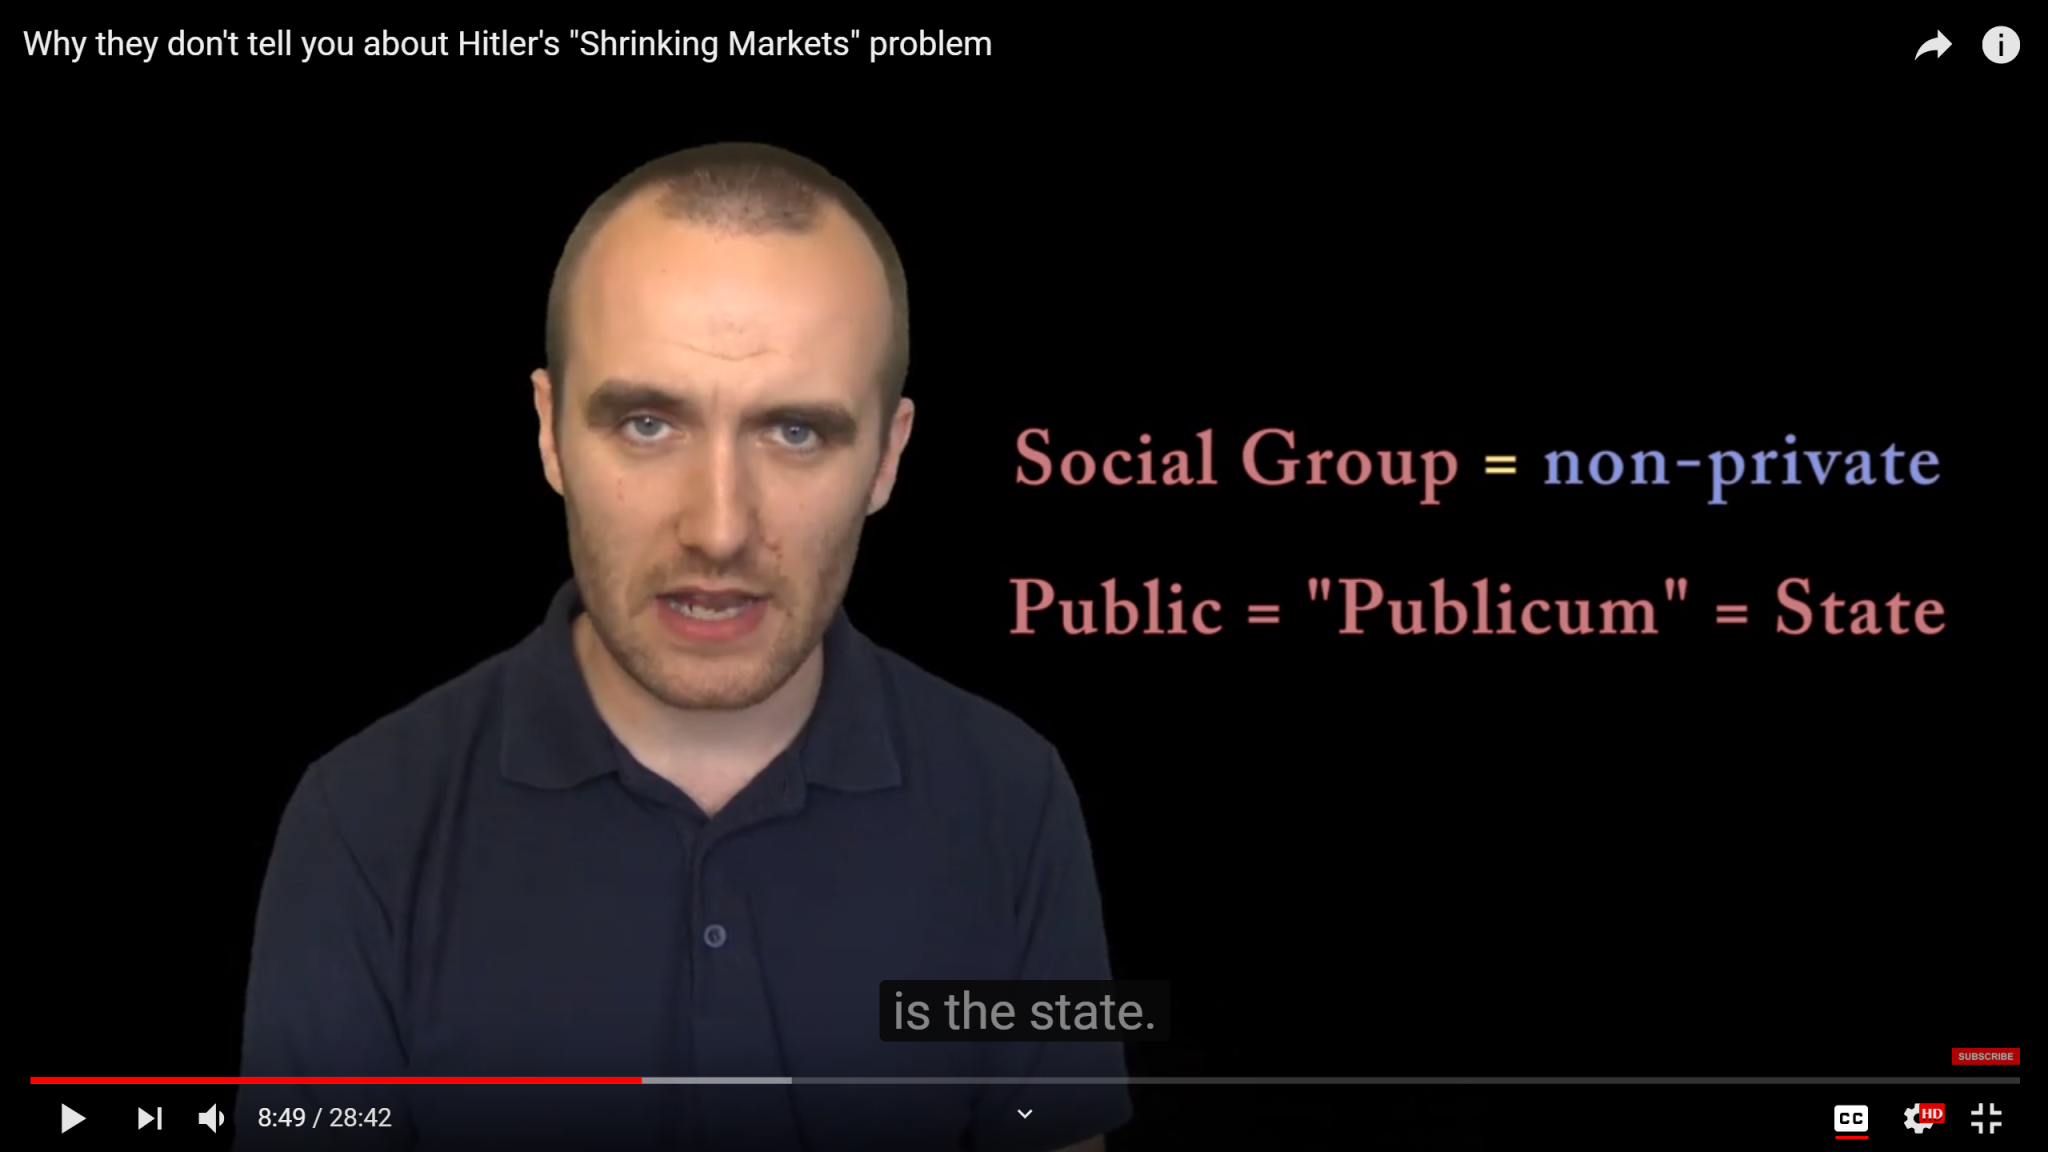 Screenshot - 7_9_2019 , 10_50_50 AM (1) Why they don't tell you about Hitler's _Shrinking Markets_ problem - YouTube - Opera